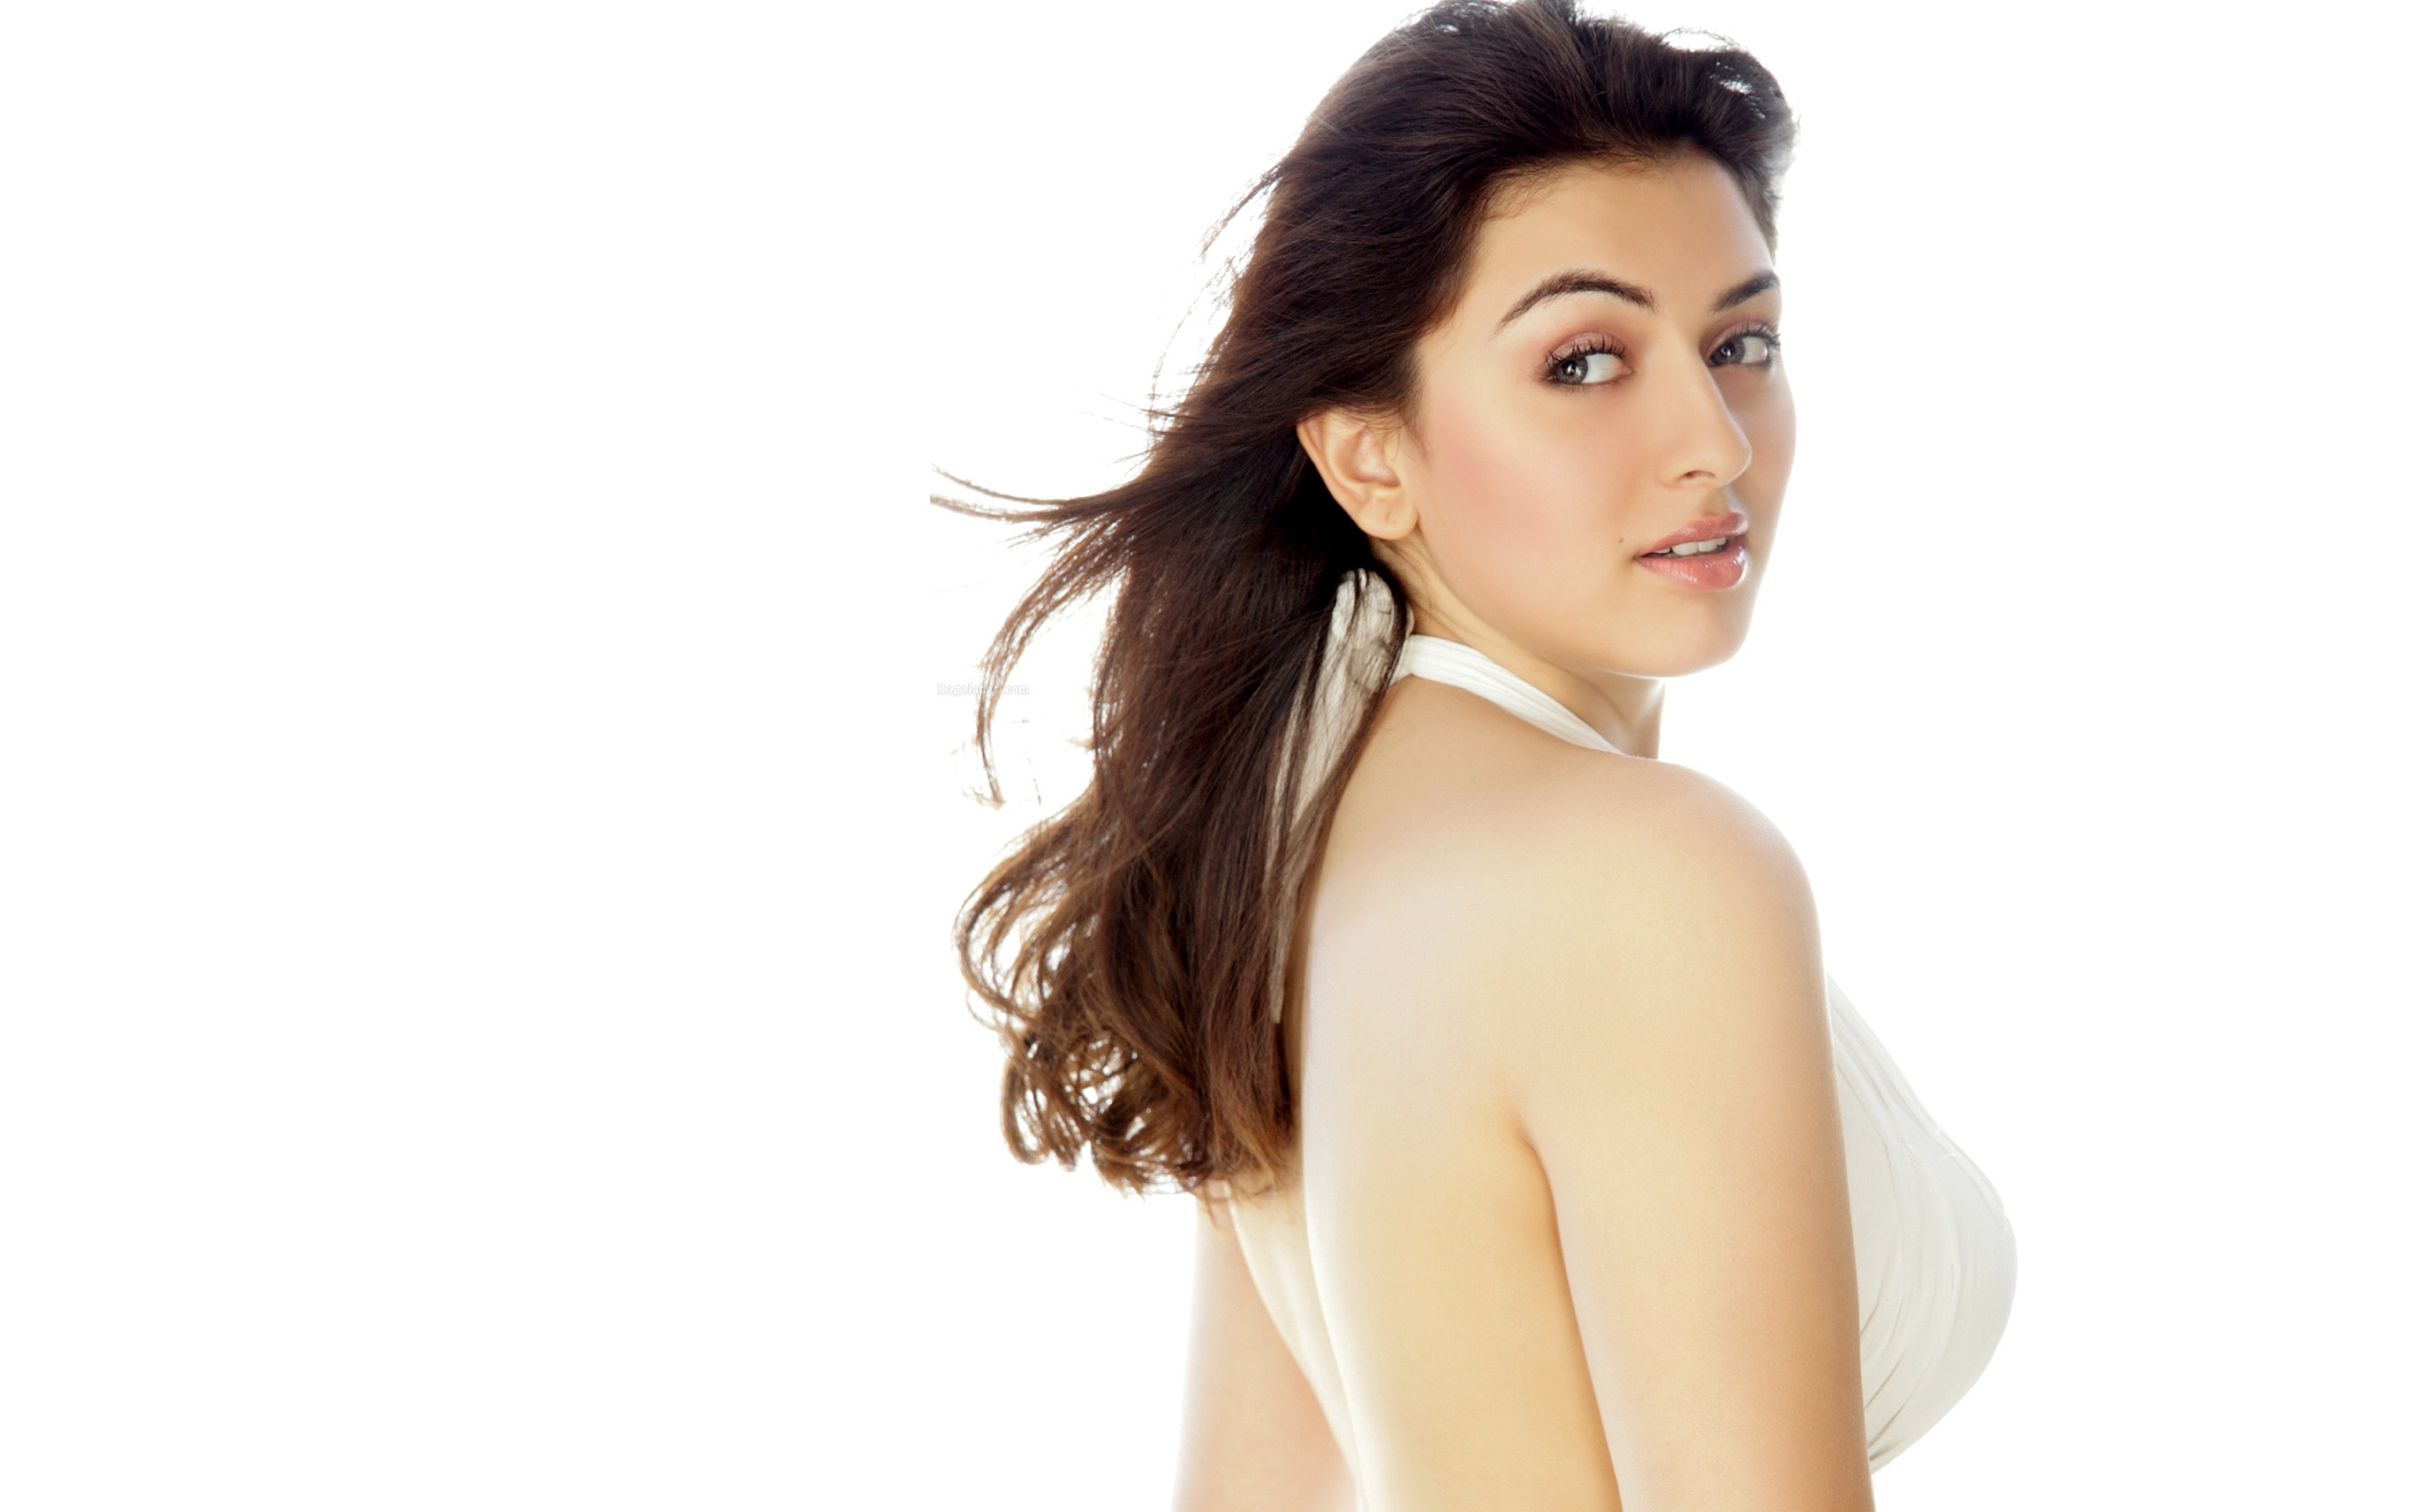 hansika wallpapers photos and desktop backgrounds up to K